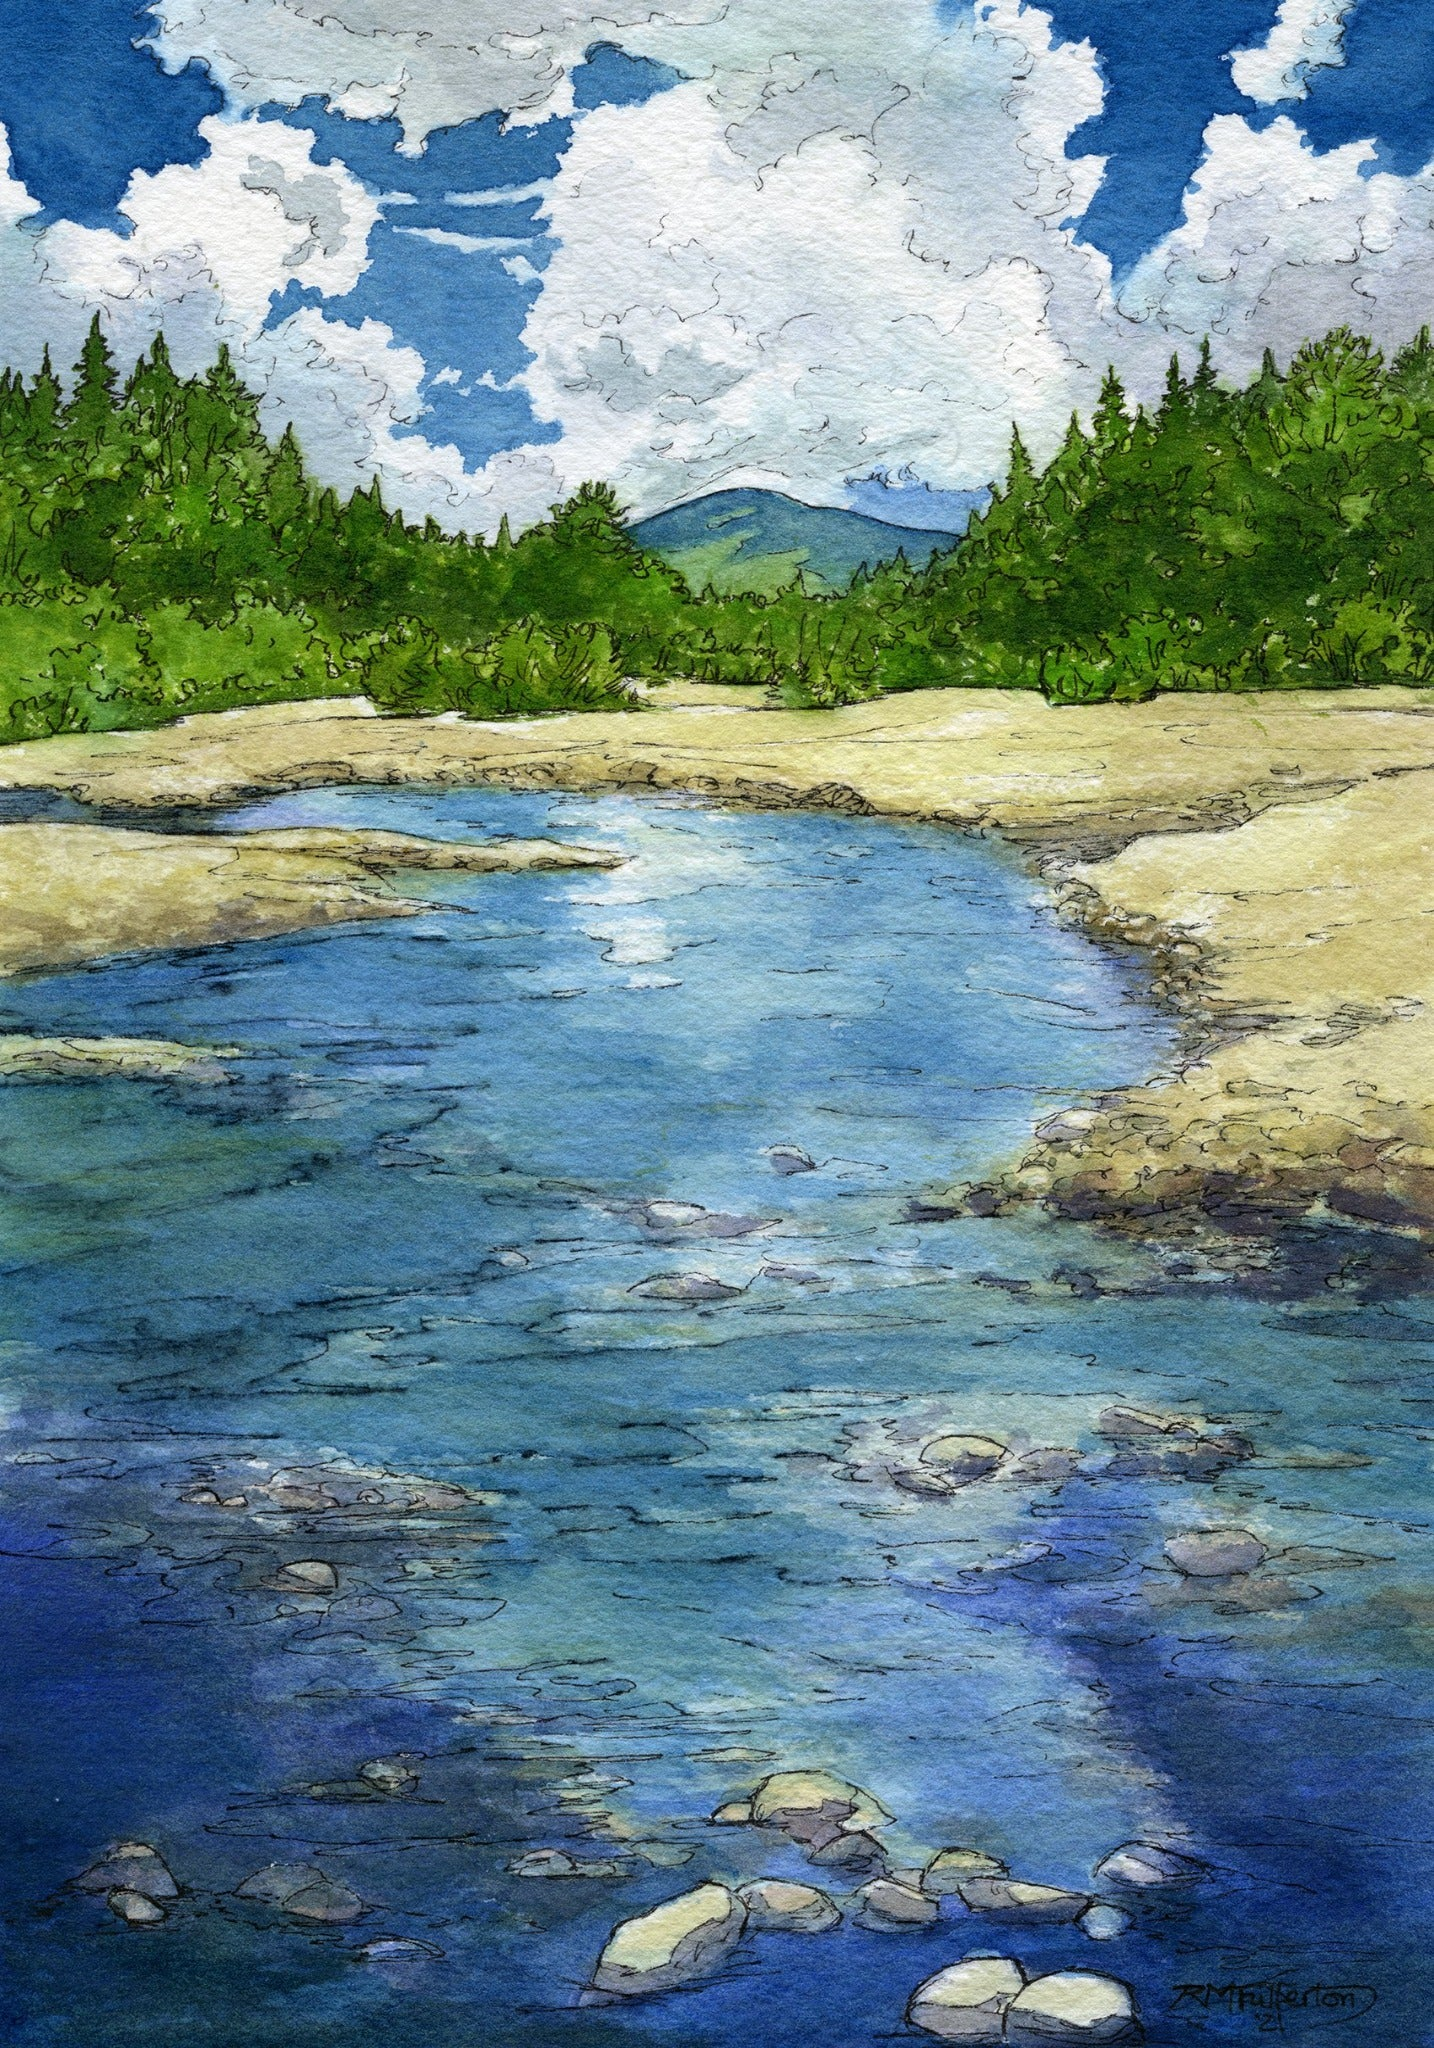 """Zealand River Valley"" is a 6 by 9 inch watercolor and ink painting on paper, depicting the Zealand River as it flows north, with Mount Hale in the background, all in the magnificent White Mountain National Forest of New Hampshire."